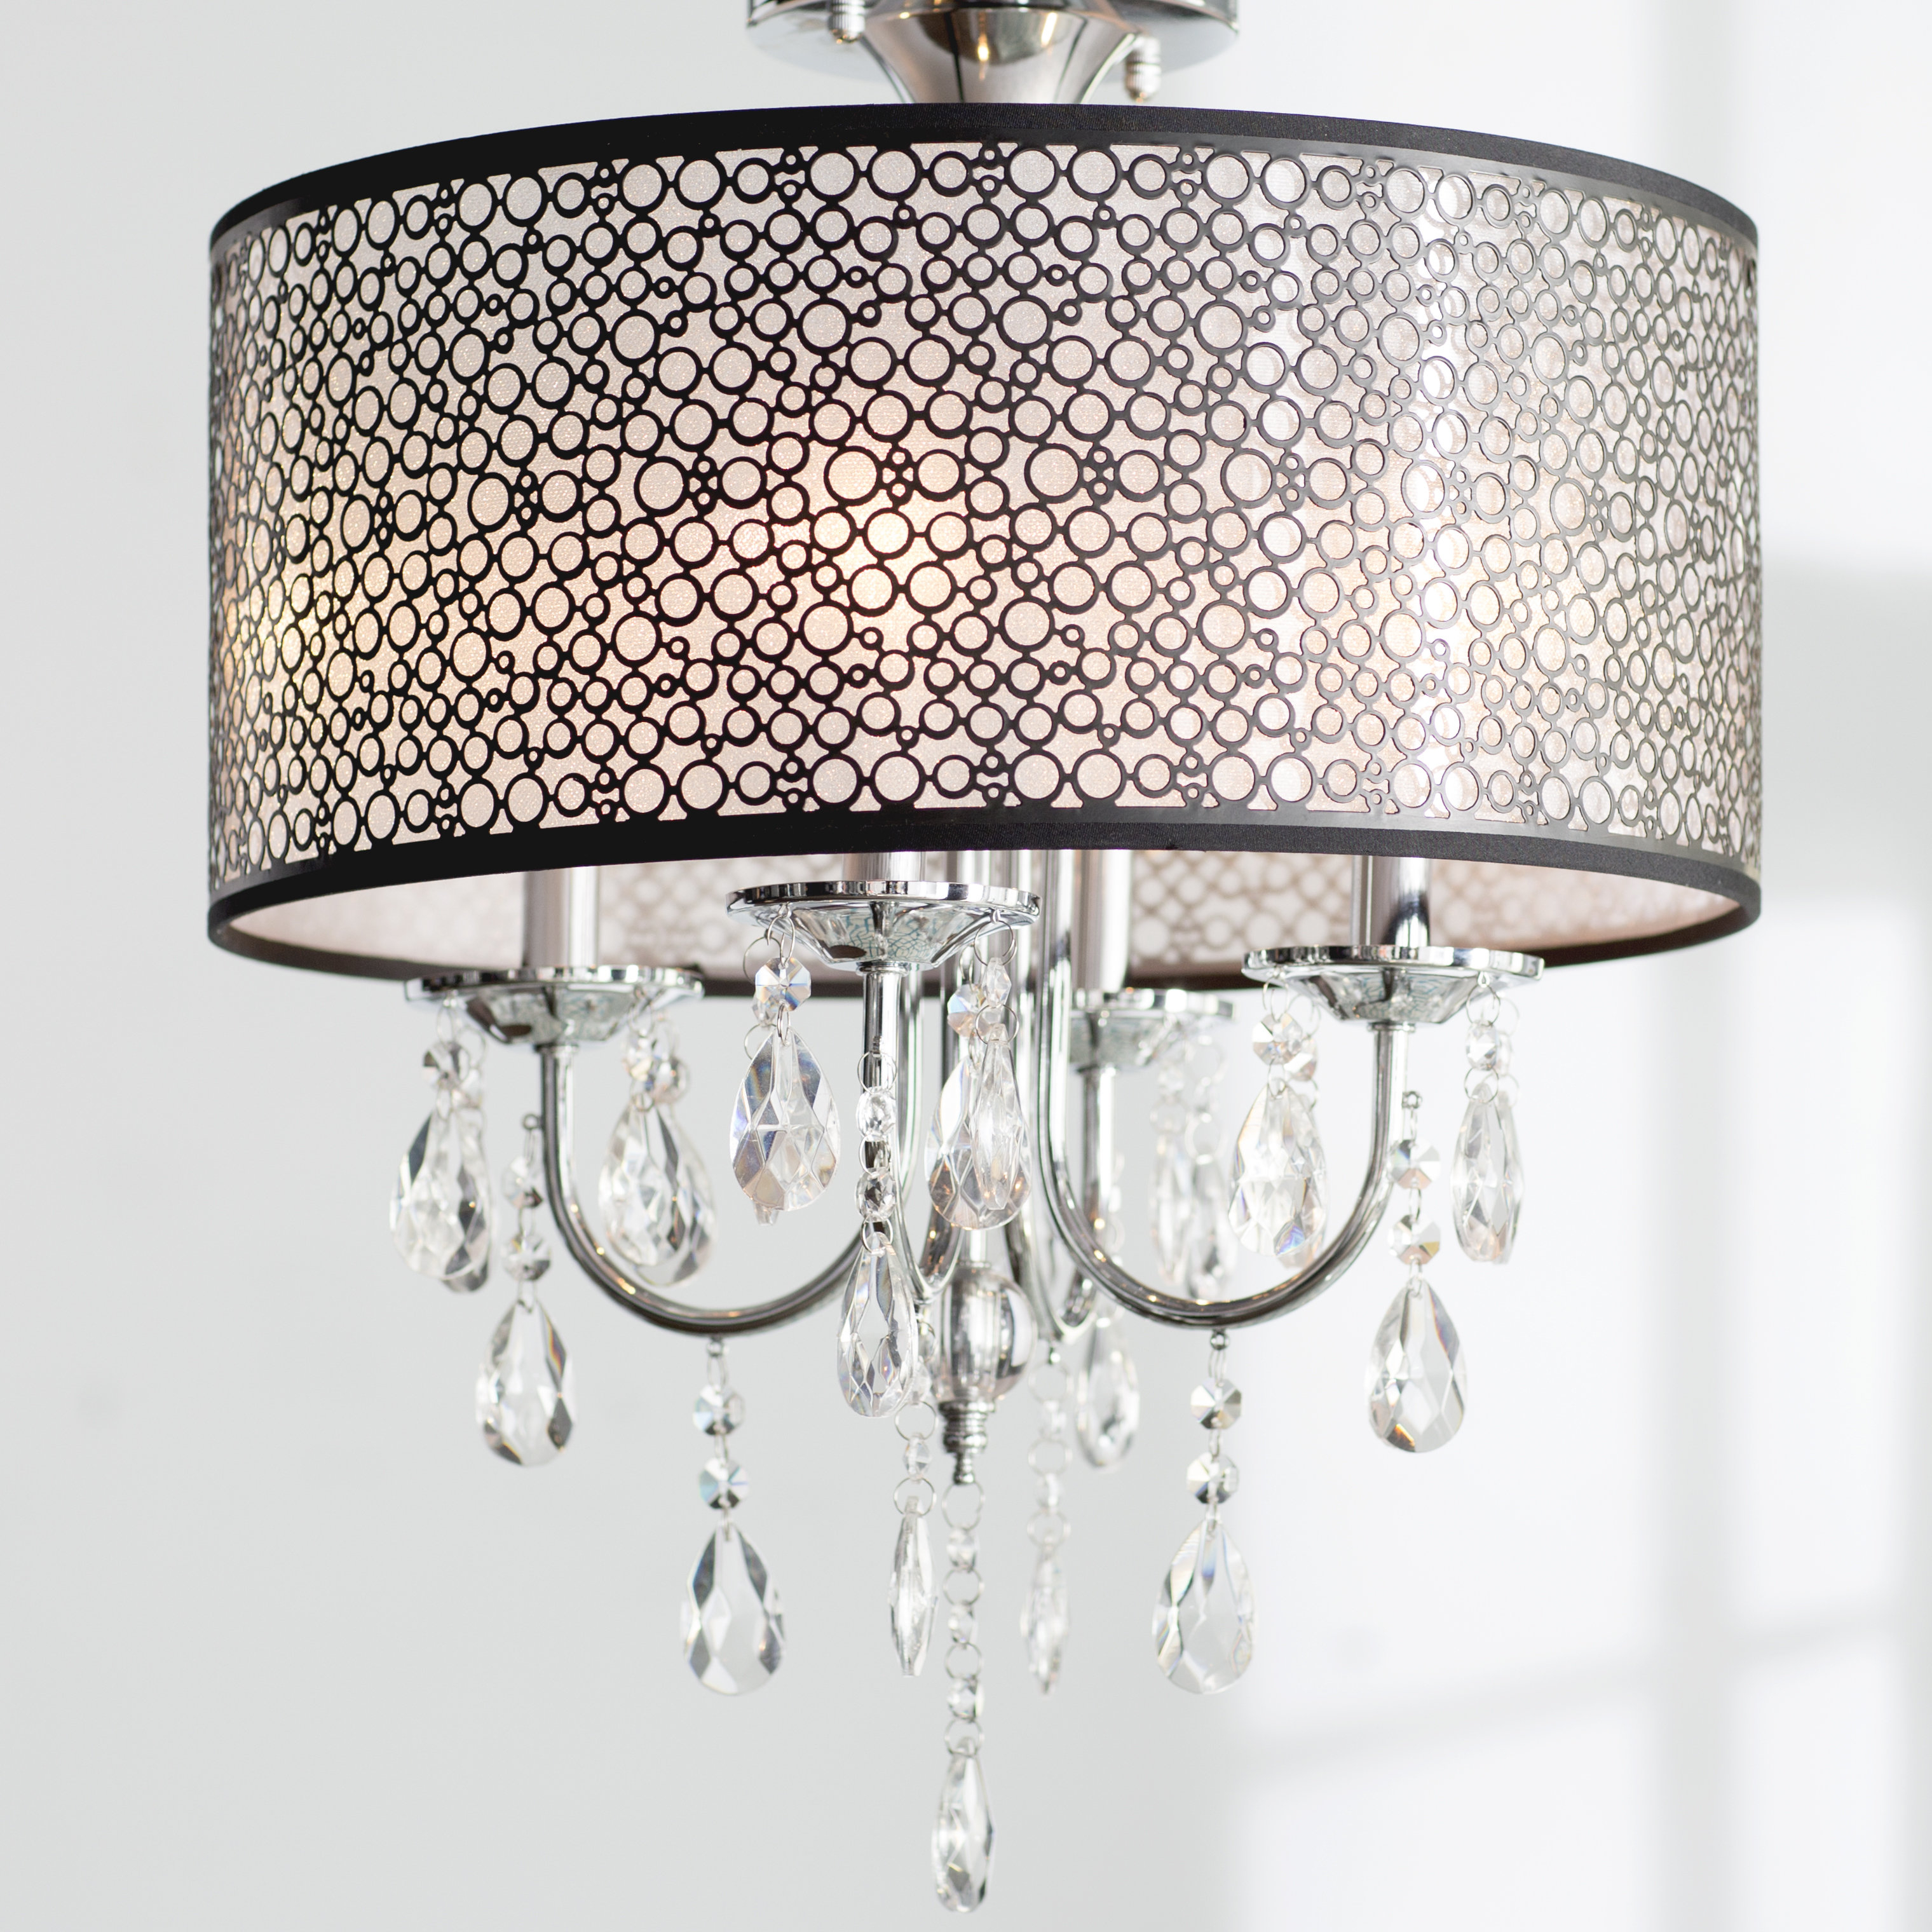 Best And Newest Sinead 4 Light Chandelier Within Alverez 4 Light Drum Chandeliers (View 6 of 25)